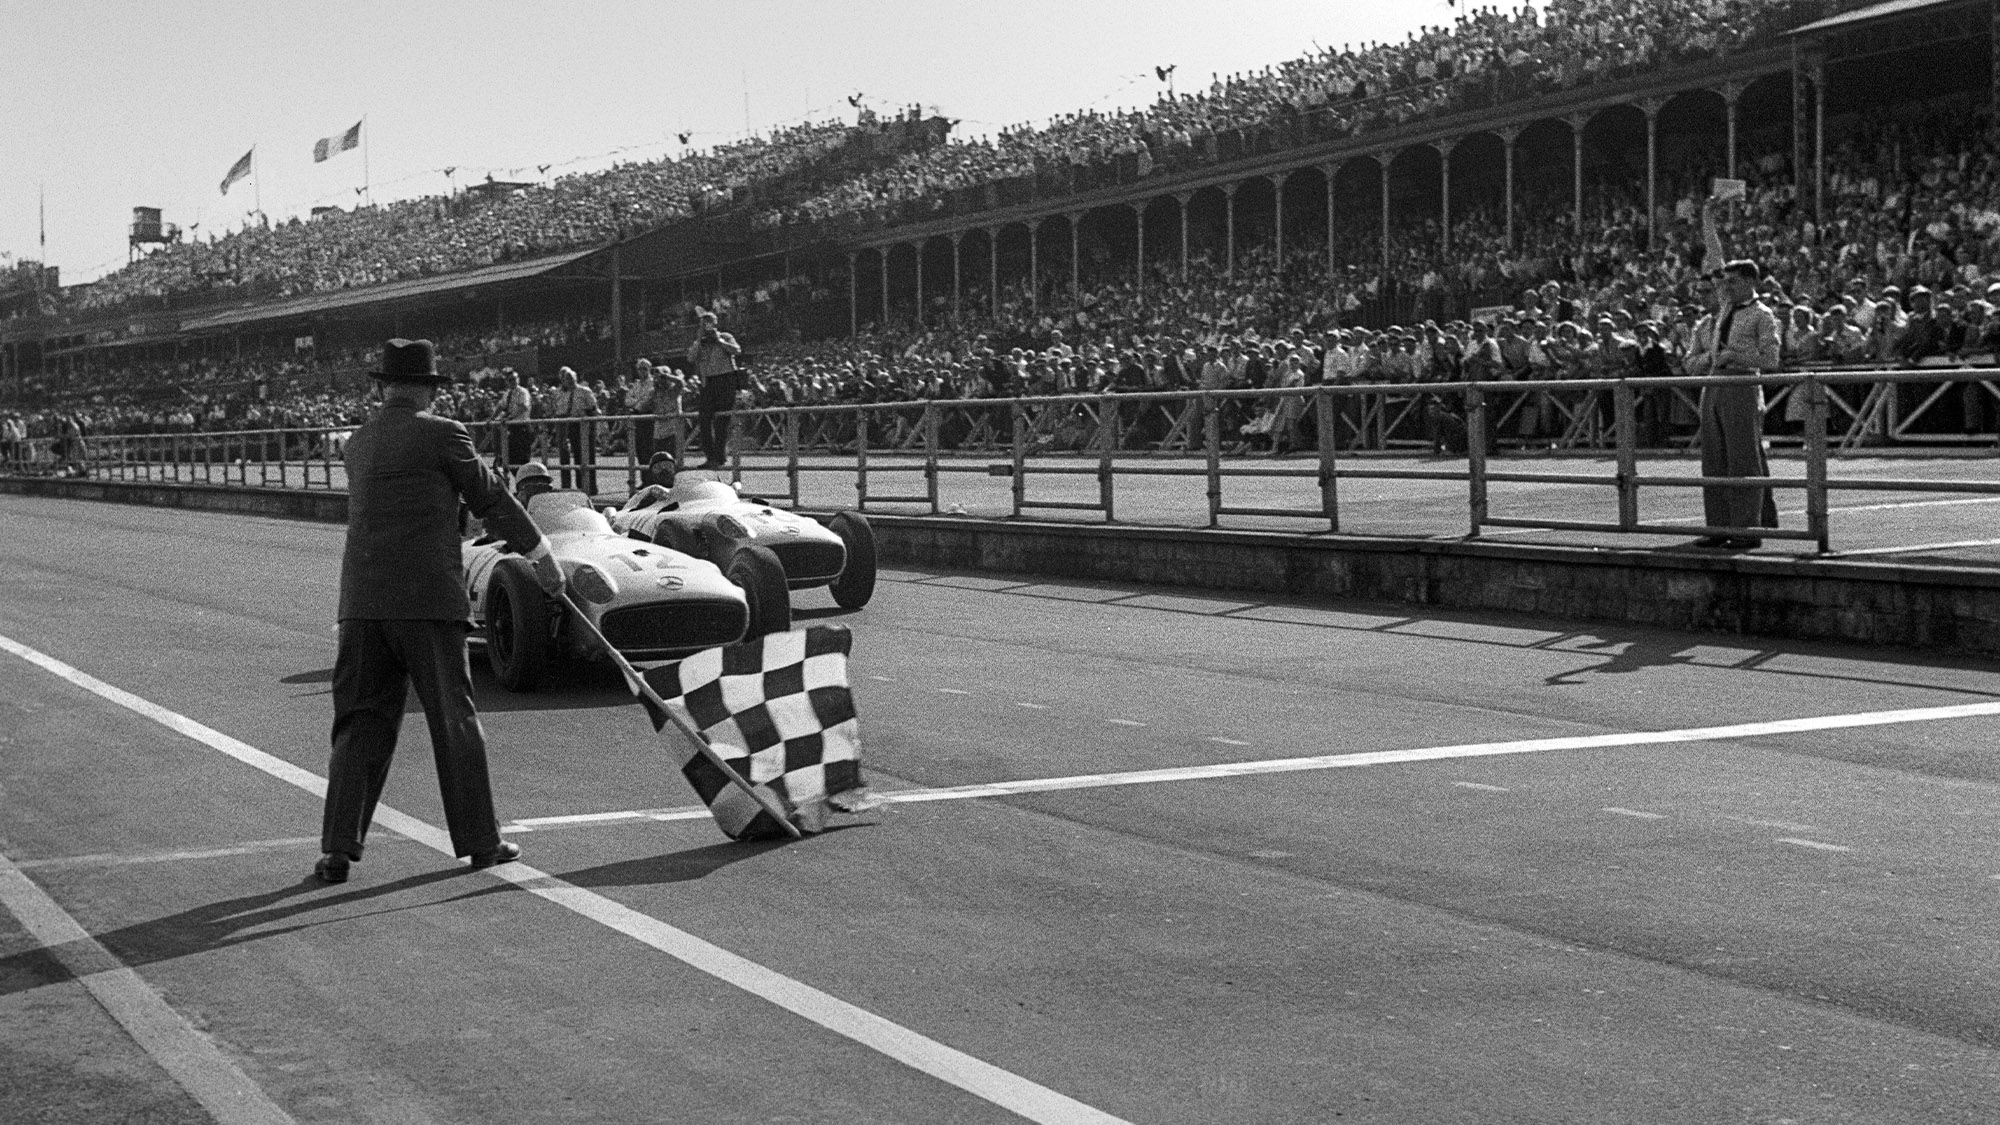 Stirling Moss beats Juan Manuel Fangio by half a car length at the finish line of the 1955 British Grand Prix at Aintree